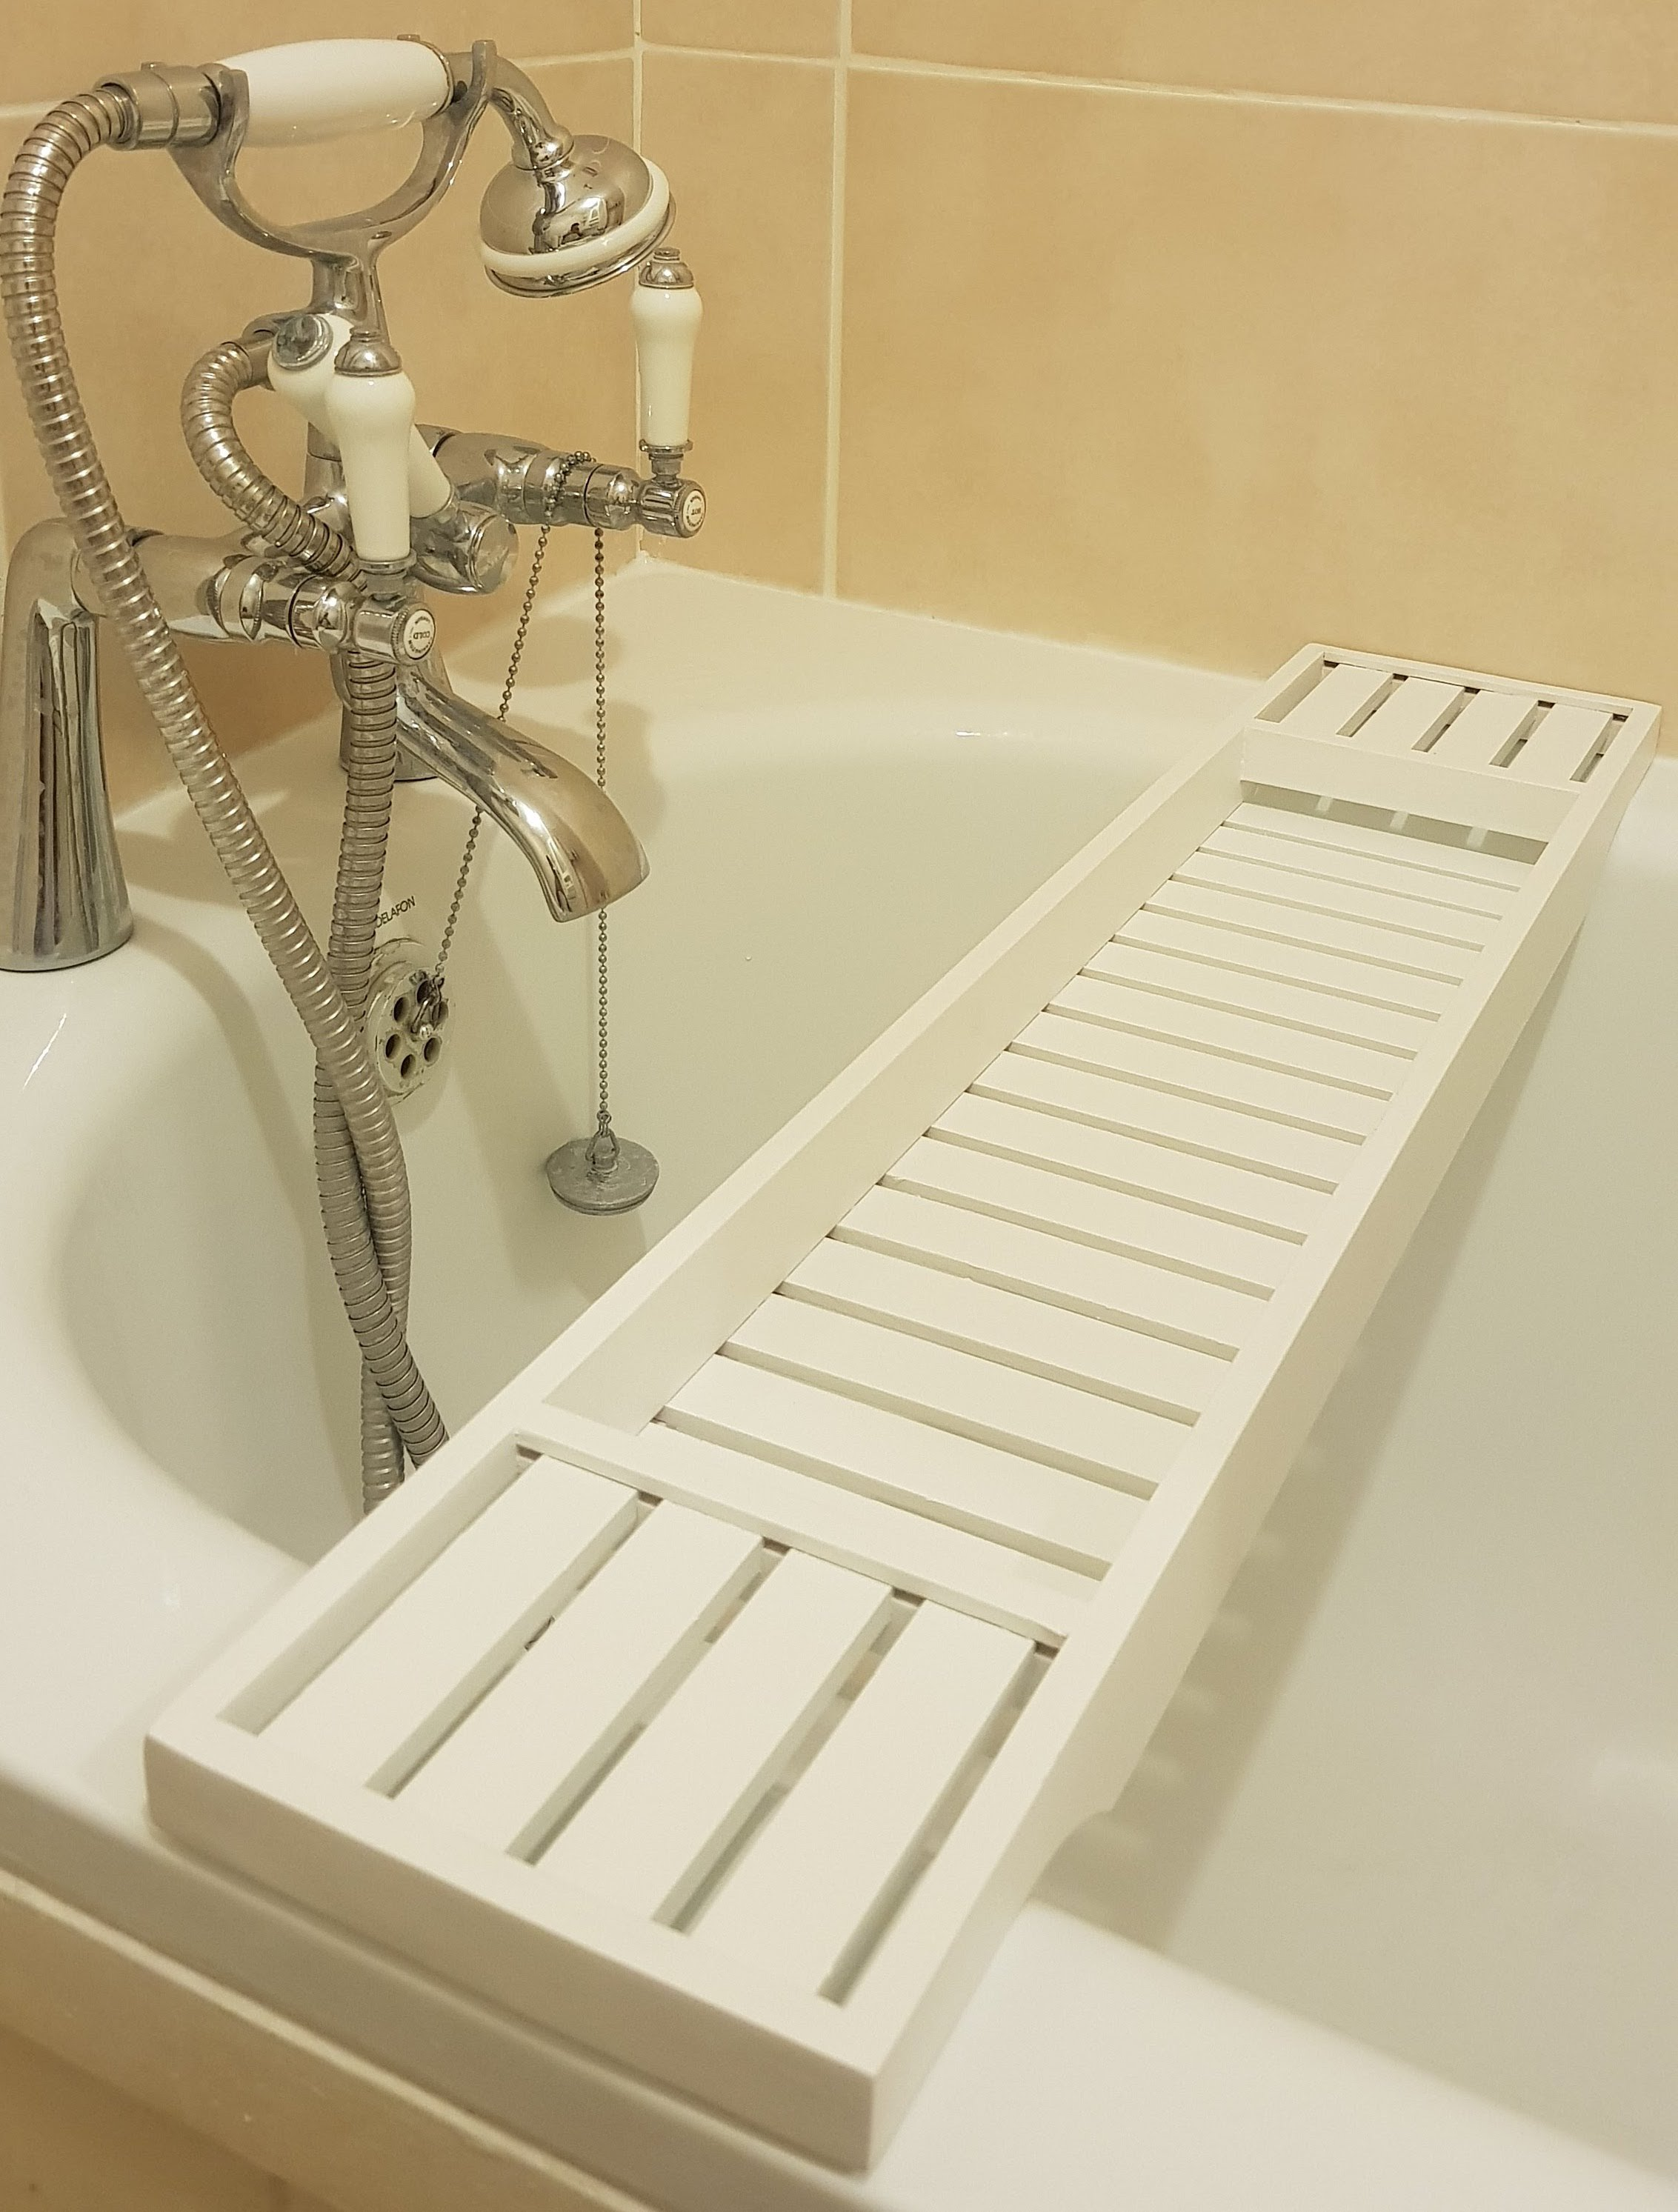 Solid Pine Wood White BathTub Rack Bridge Bath Caddy Wooden Bathroom ...